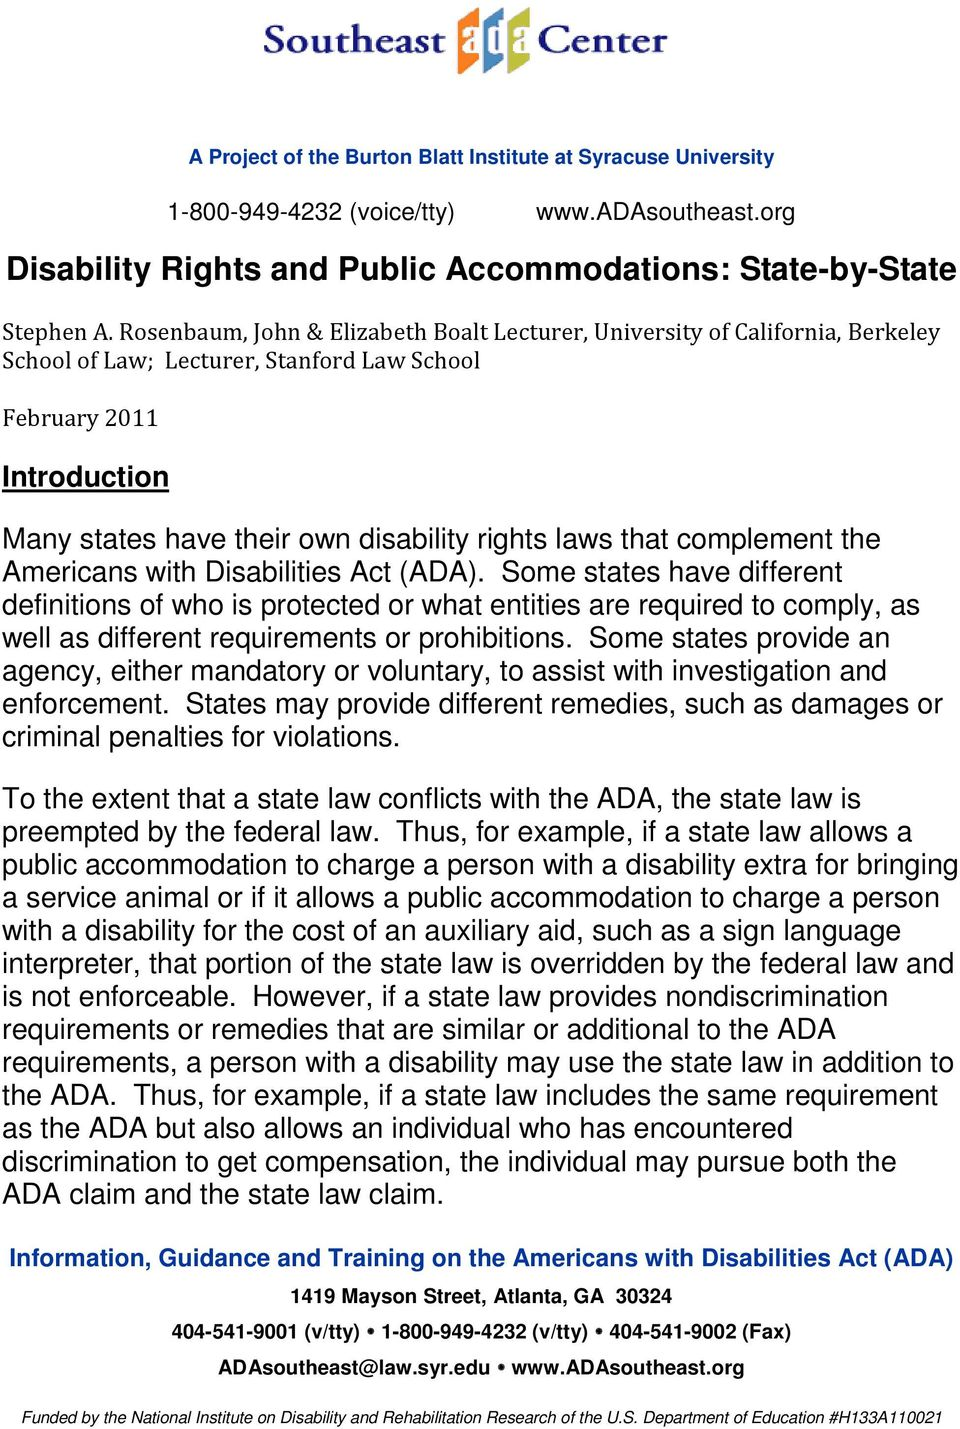 cmplement the Americans with Disabilities Act (ADA). Sme states have different definitins f wh is prtected r what entities are required t cmply, as well as different requirements r prhibitins.